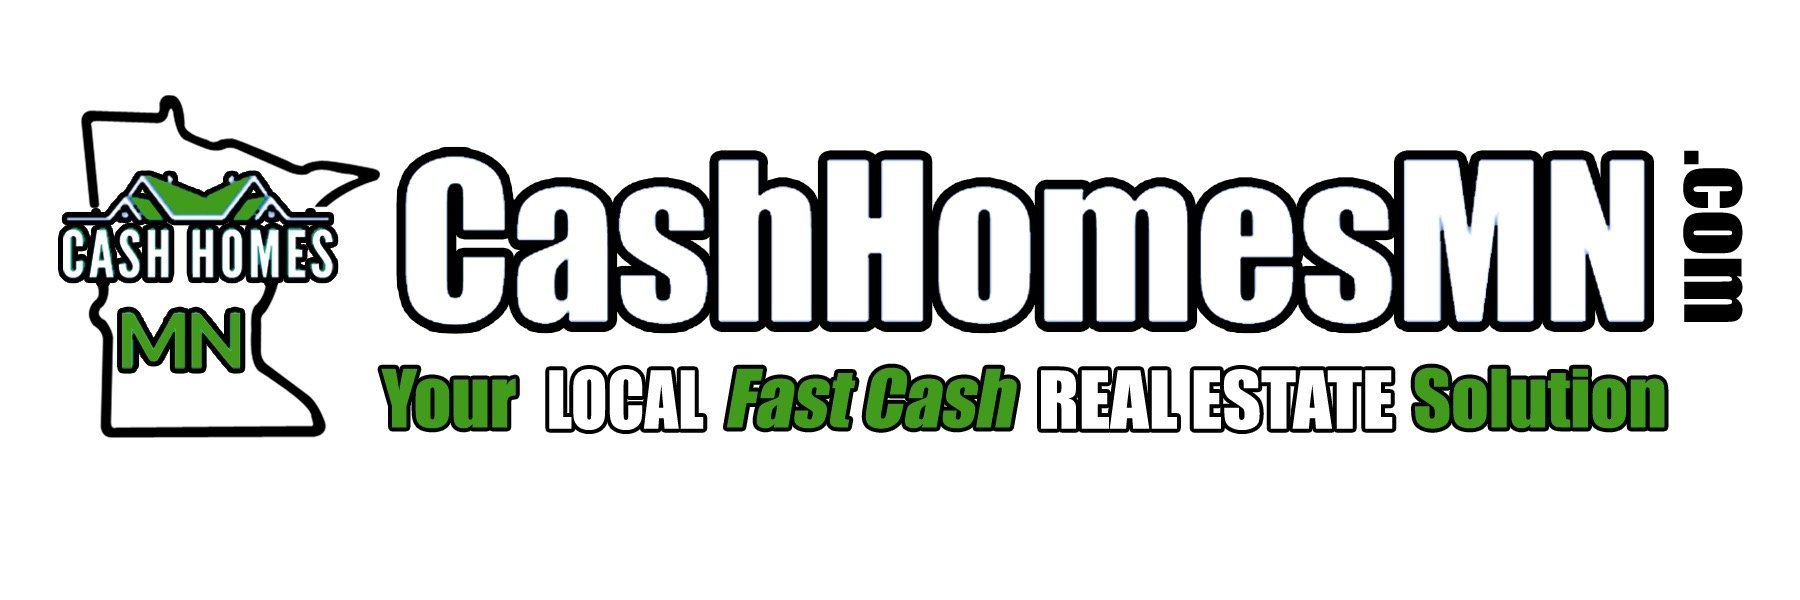 We Buy Houses MN – Cash Homes MN logo